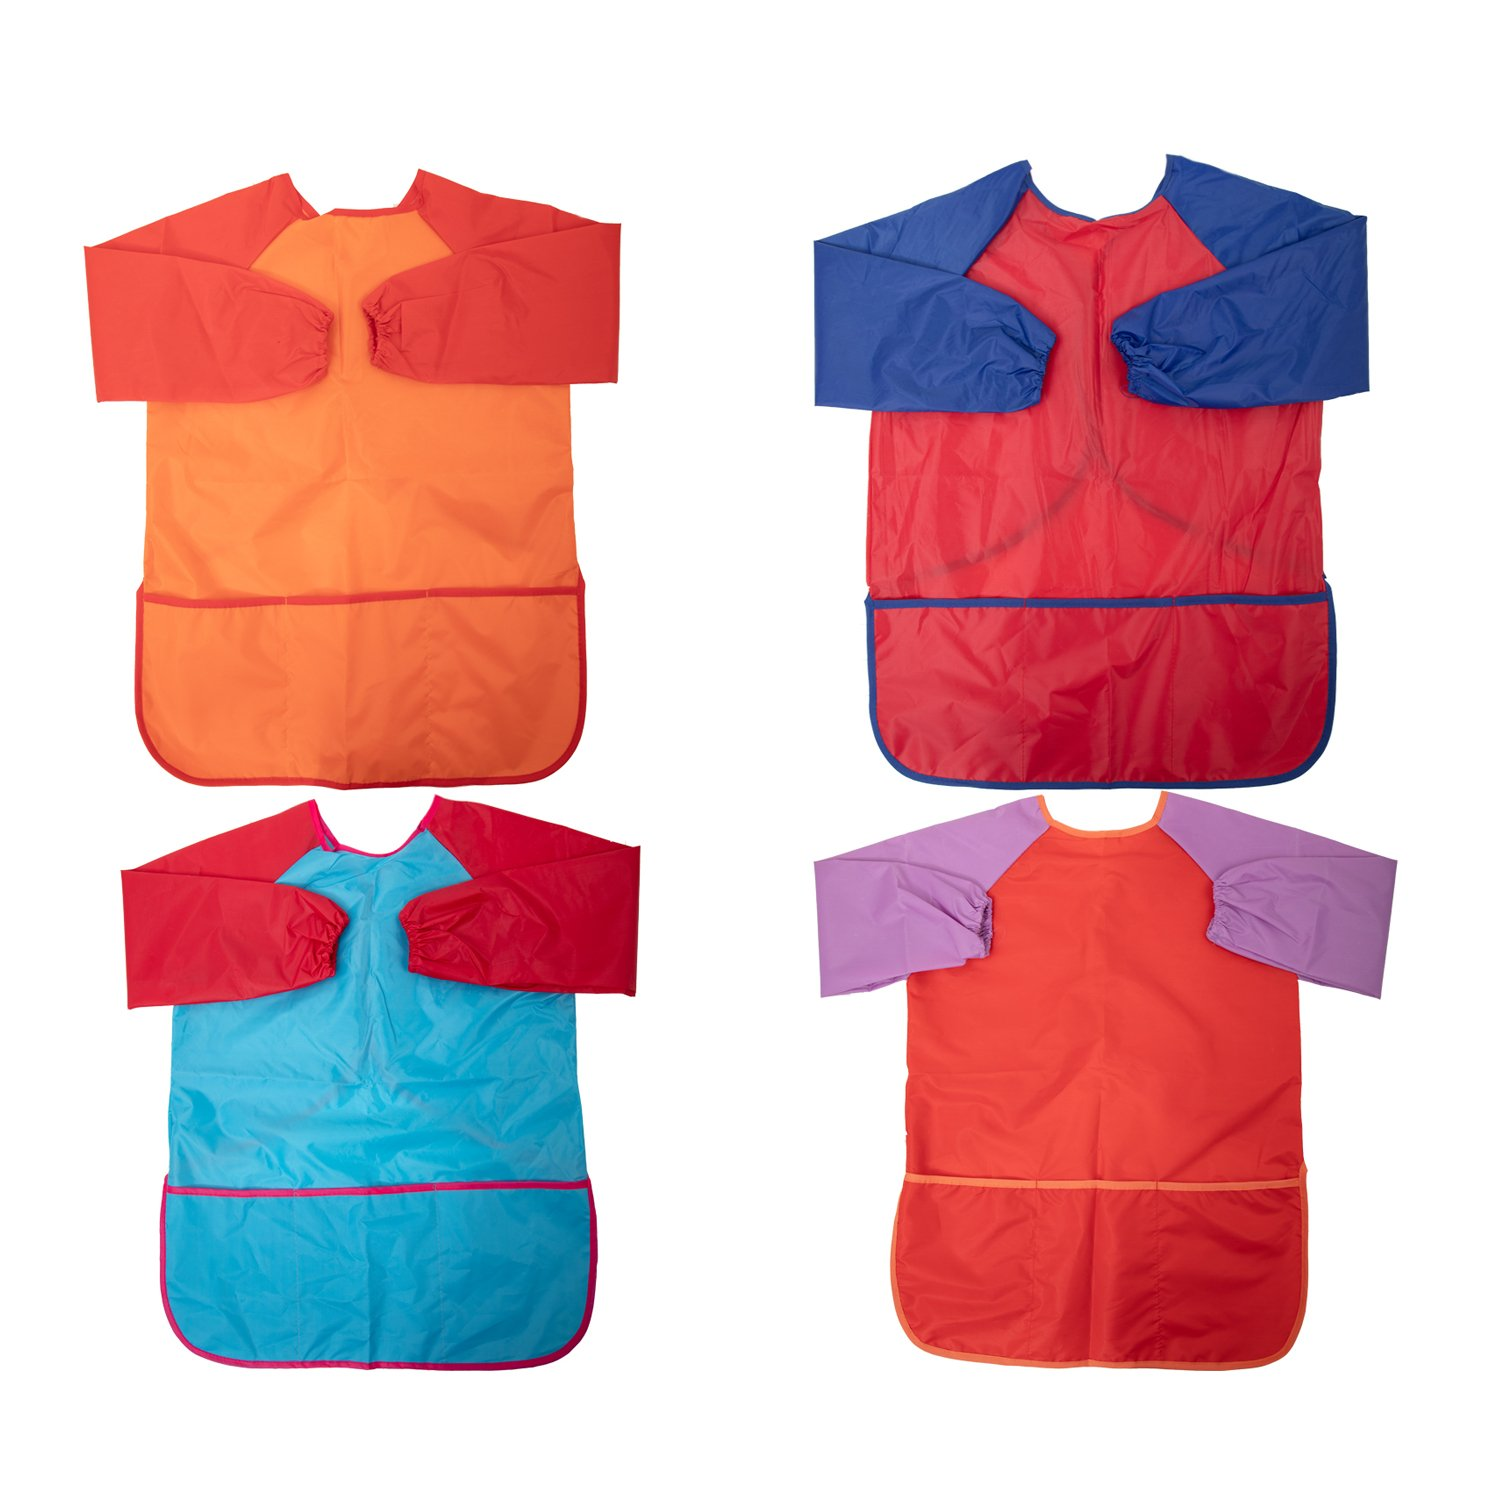 Senfhome Pack of 4 Kids Waterproof Art Smocks, Children's Art Aprons Long Sleeve with 3 Pockets for 3-7 Years Old